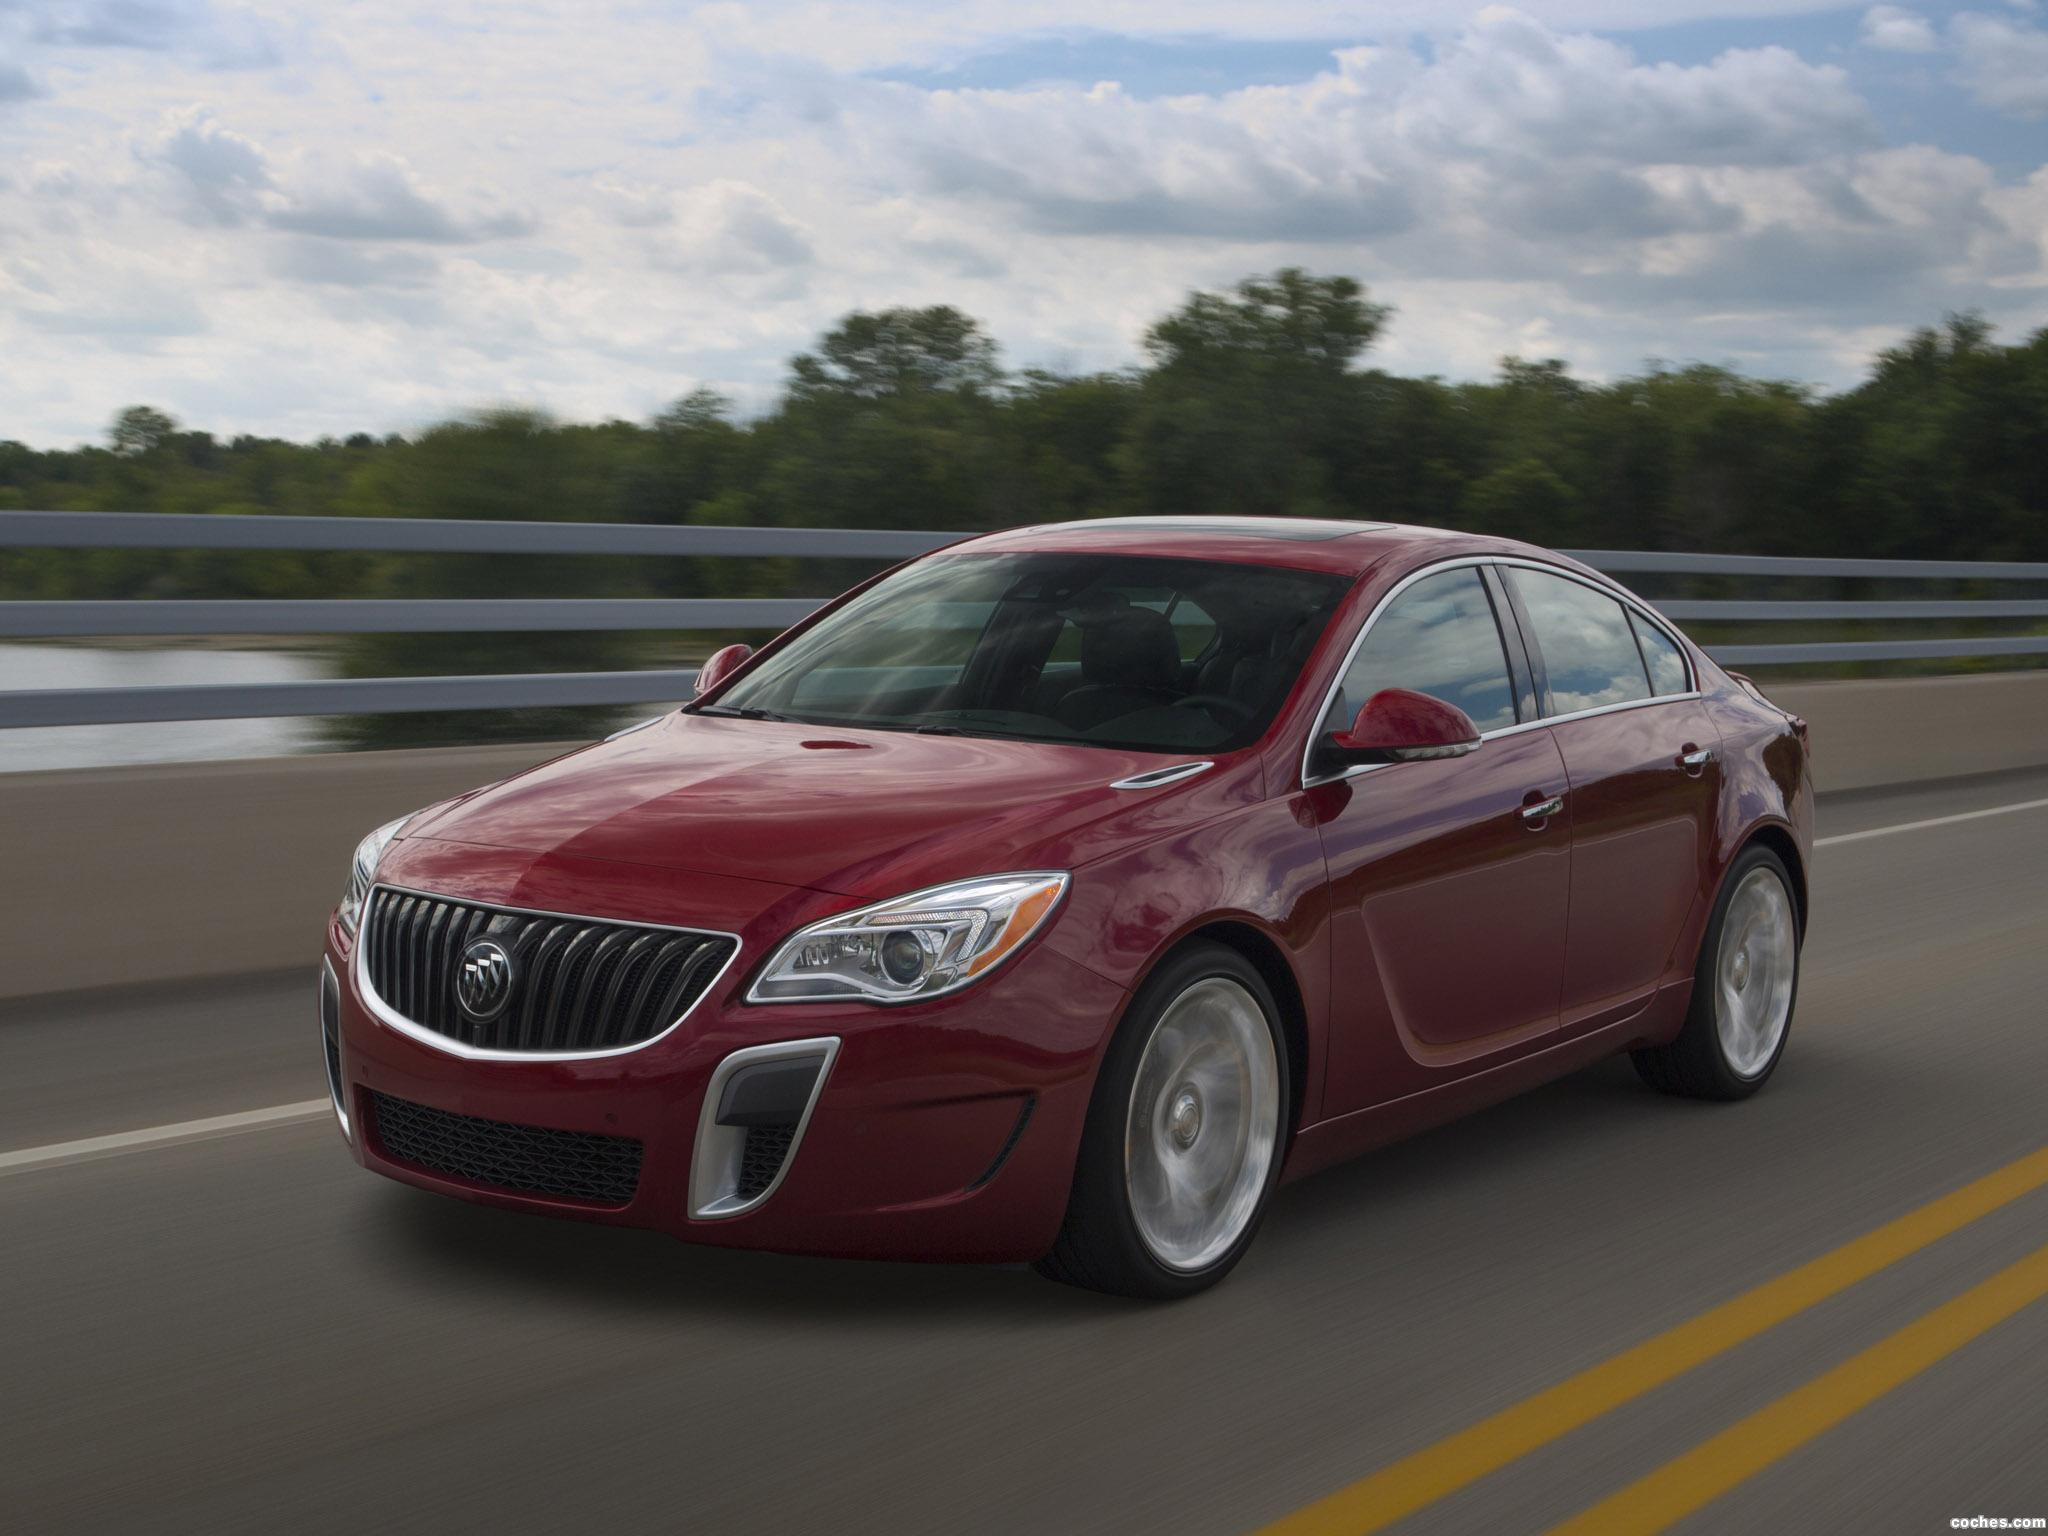 Foto 5 de Buick Regal GS 2013